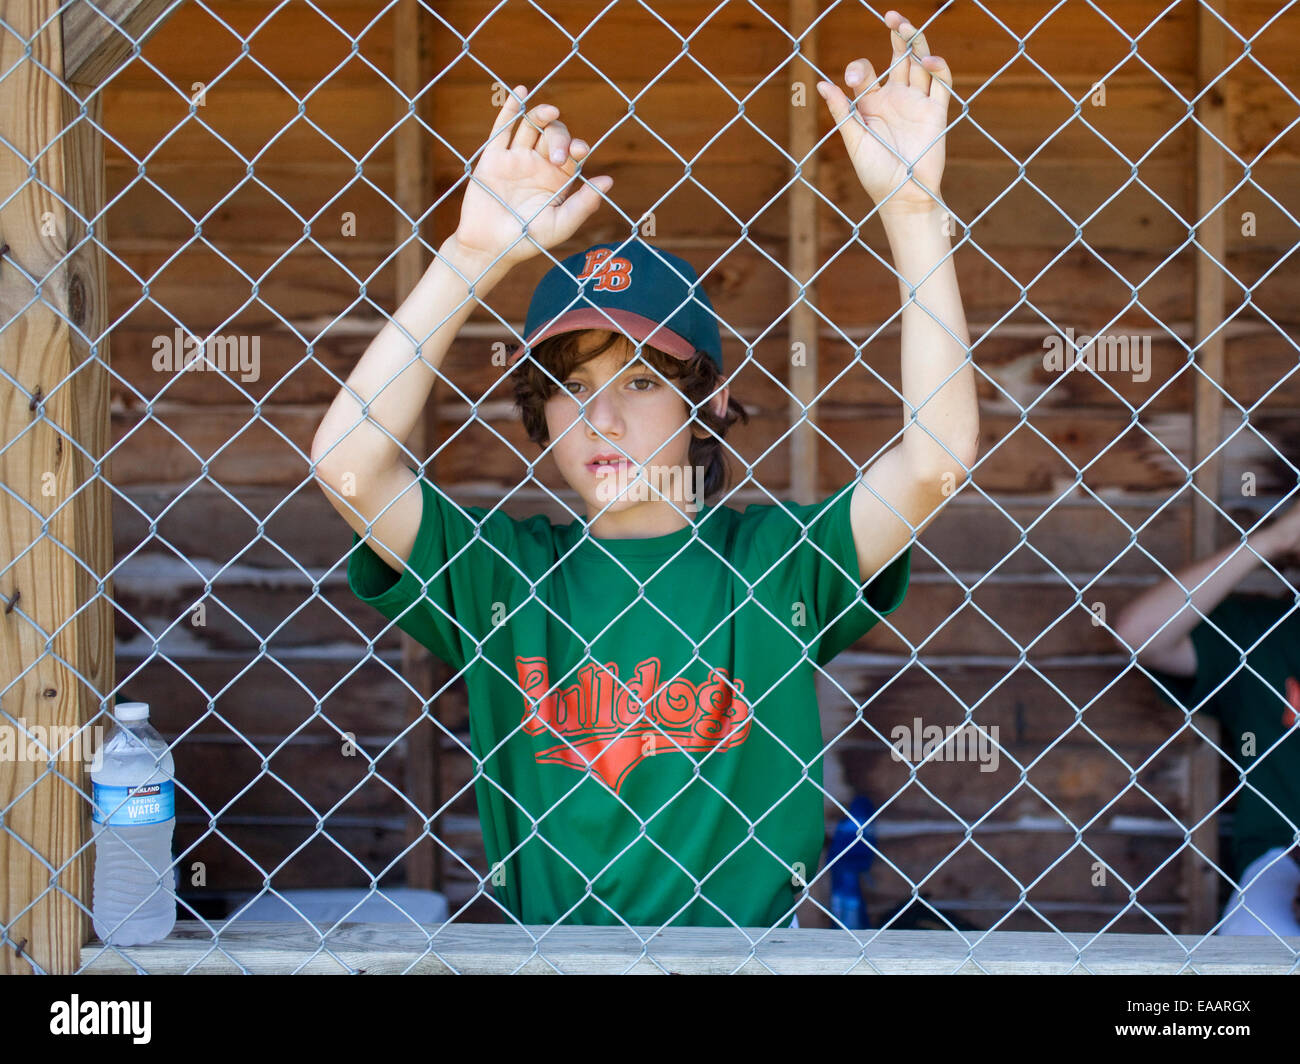 youth baseball player in dugout - Stock Image